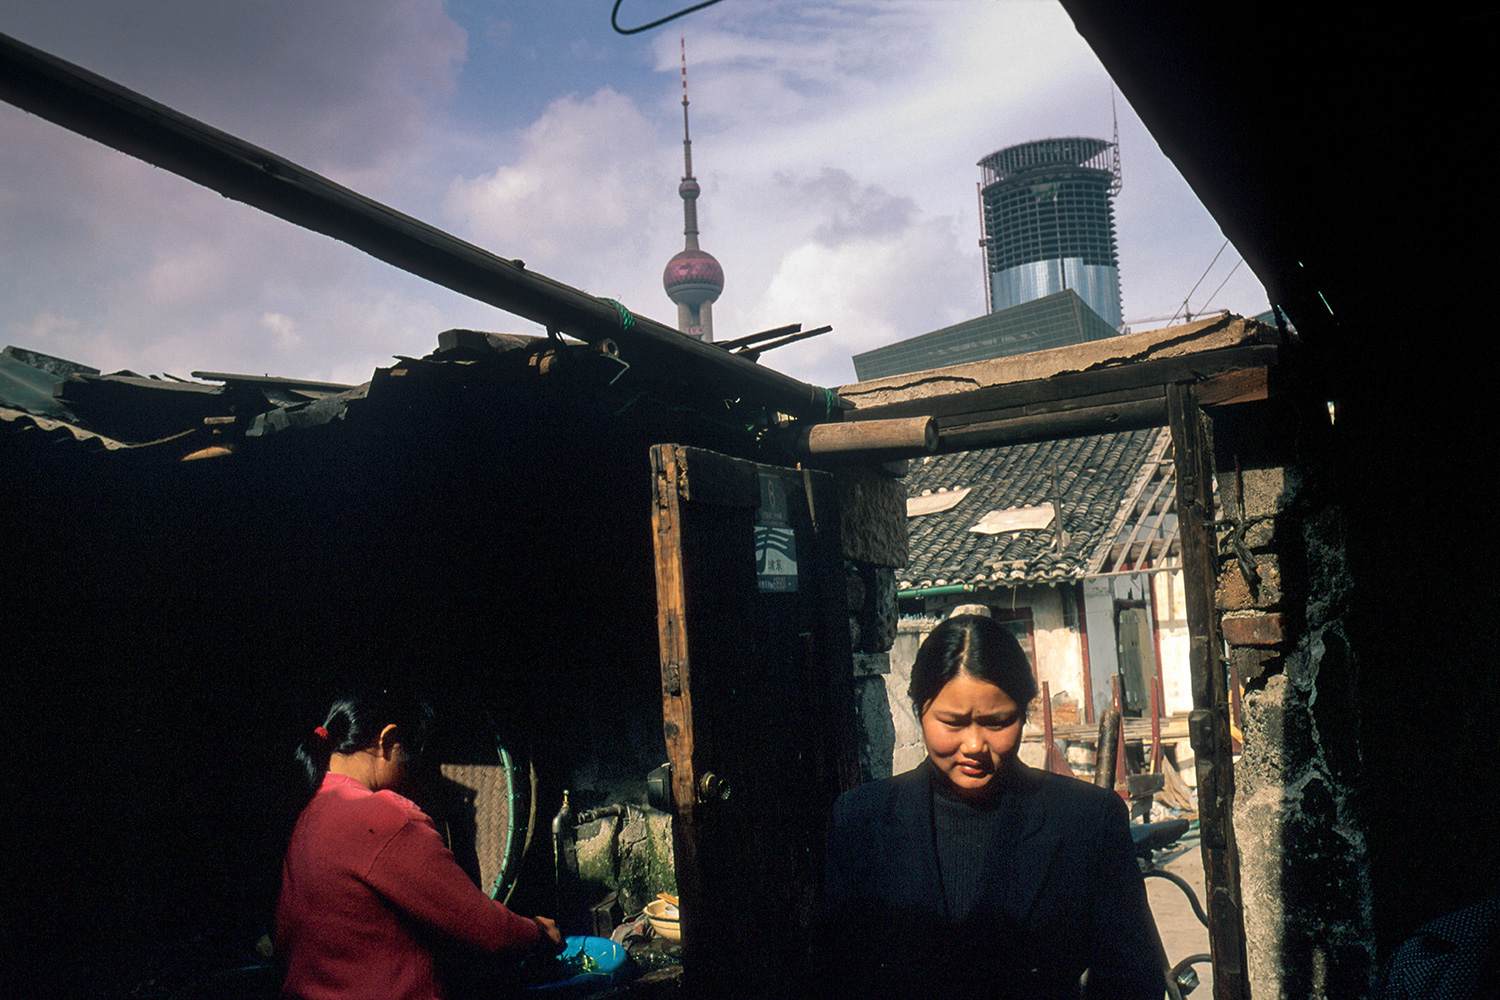 Homes vacated by residents to make way for construction projects were occupied by people from the countryside who came to Pudong to cater to the needs of construction workers, 1996.